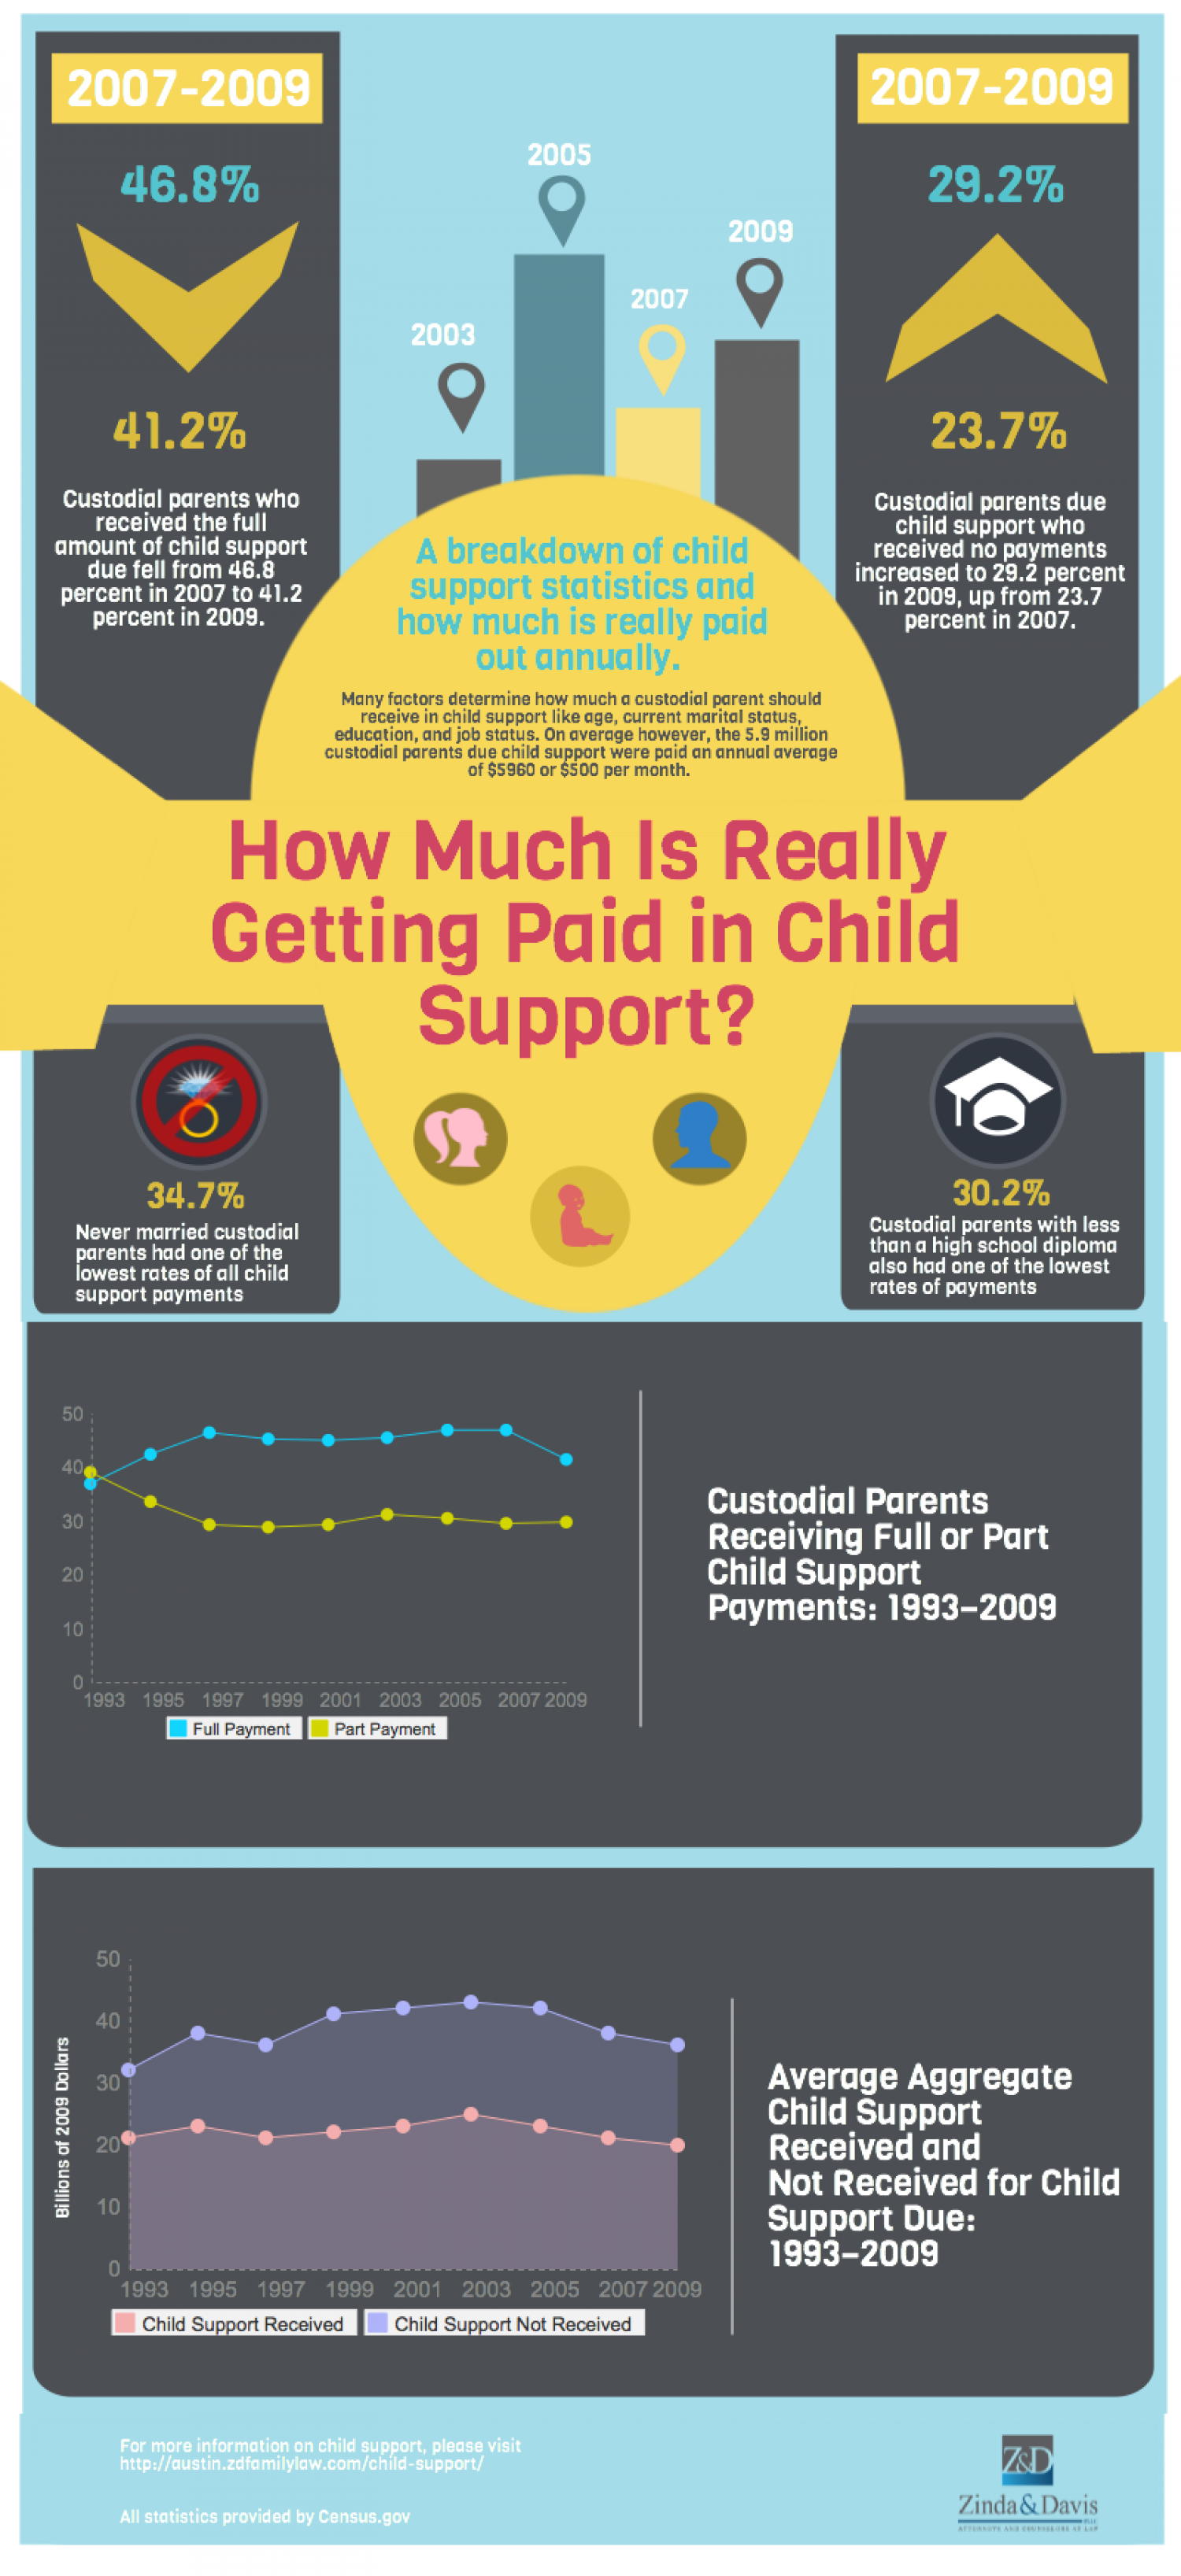 How Much Is Really Getting Paid in Child Support? Infographic